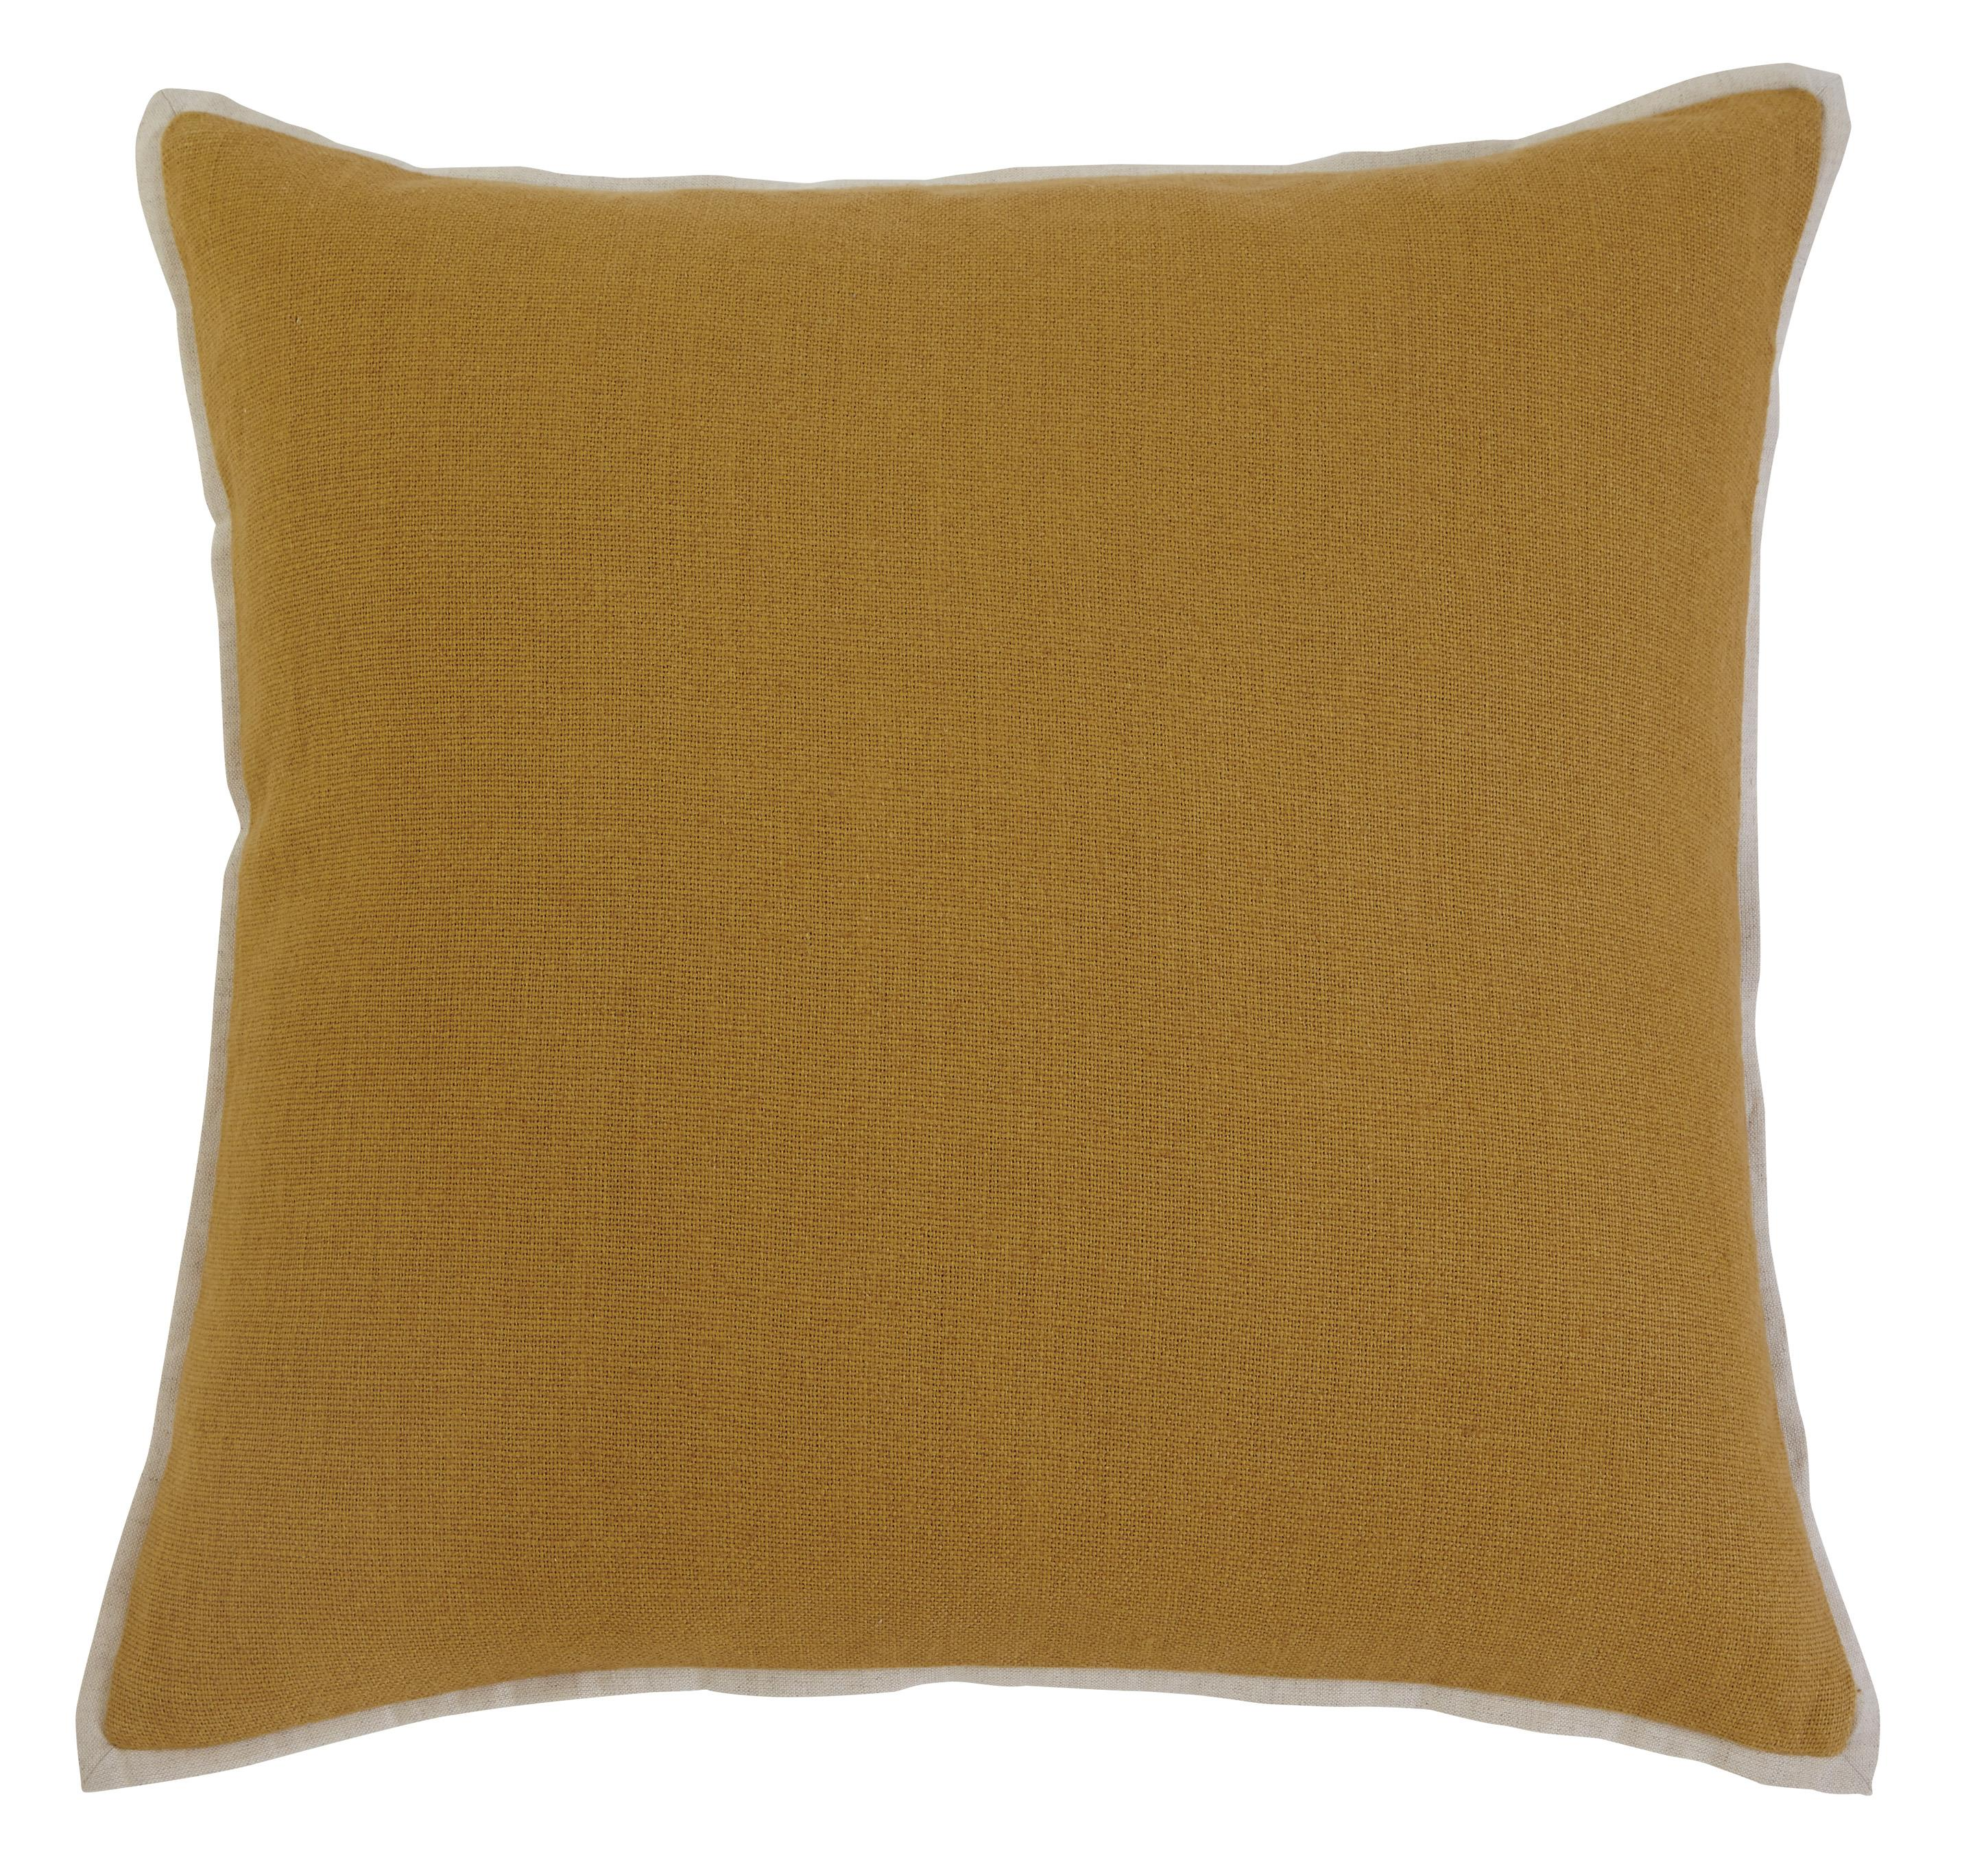 Signature Design by Ashley Pillows Solid - Mustard Pillow Cover - Item Number: A1000343P